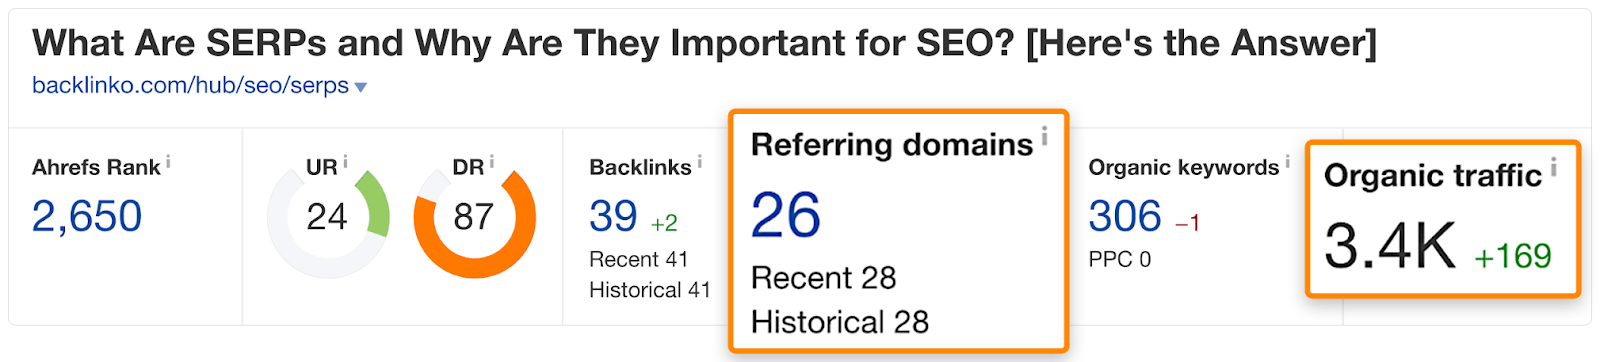 9 competitor serp features 1